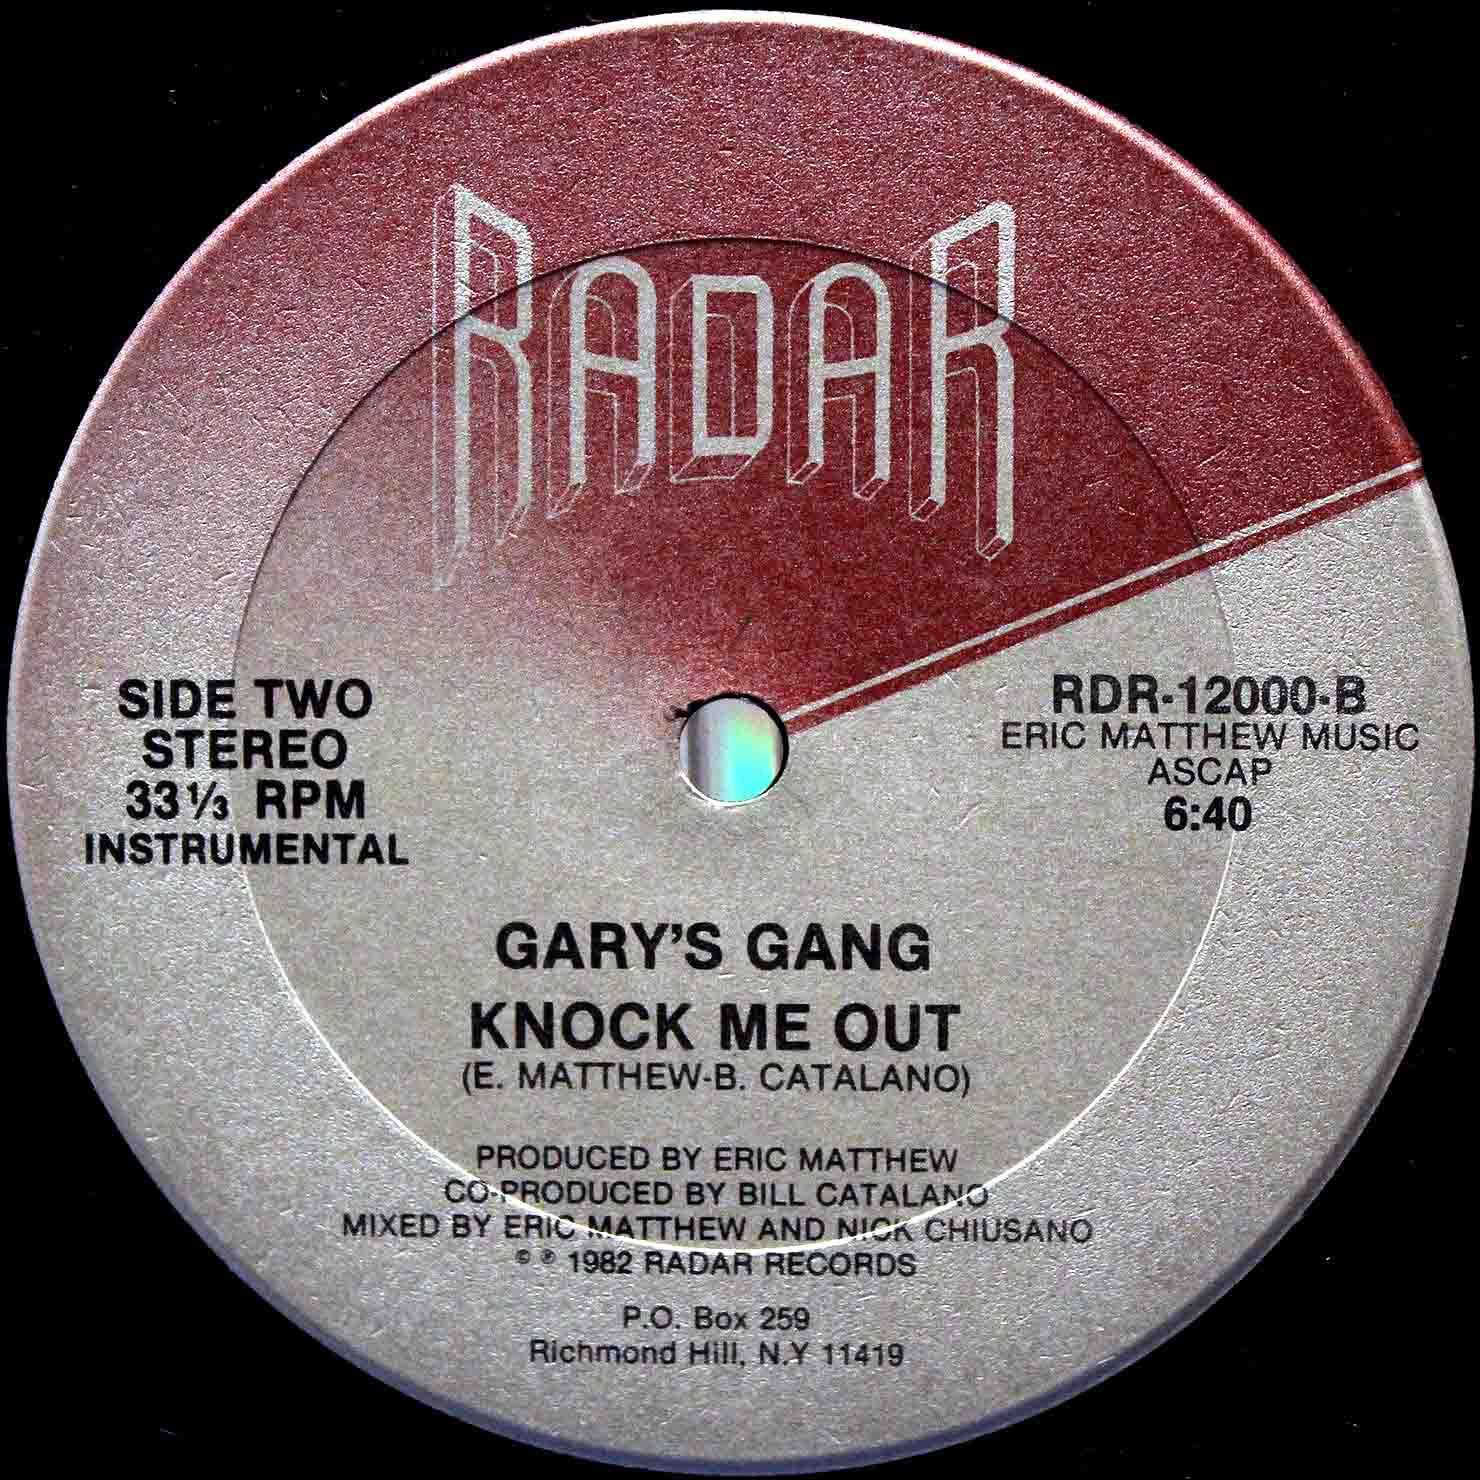 Garys Gang Knock me out 06